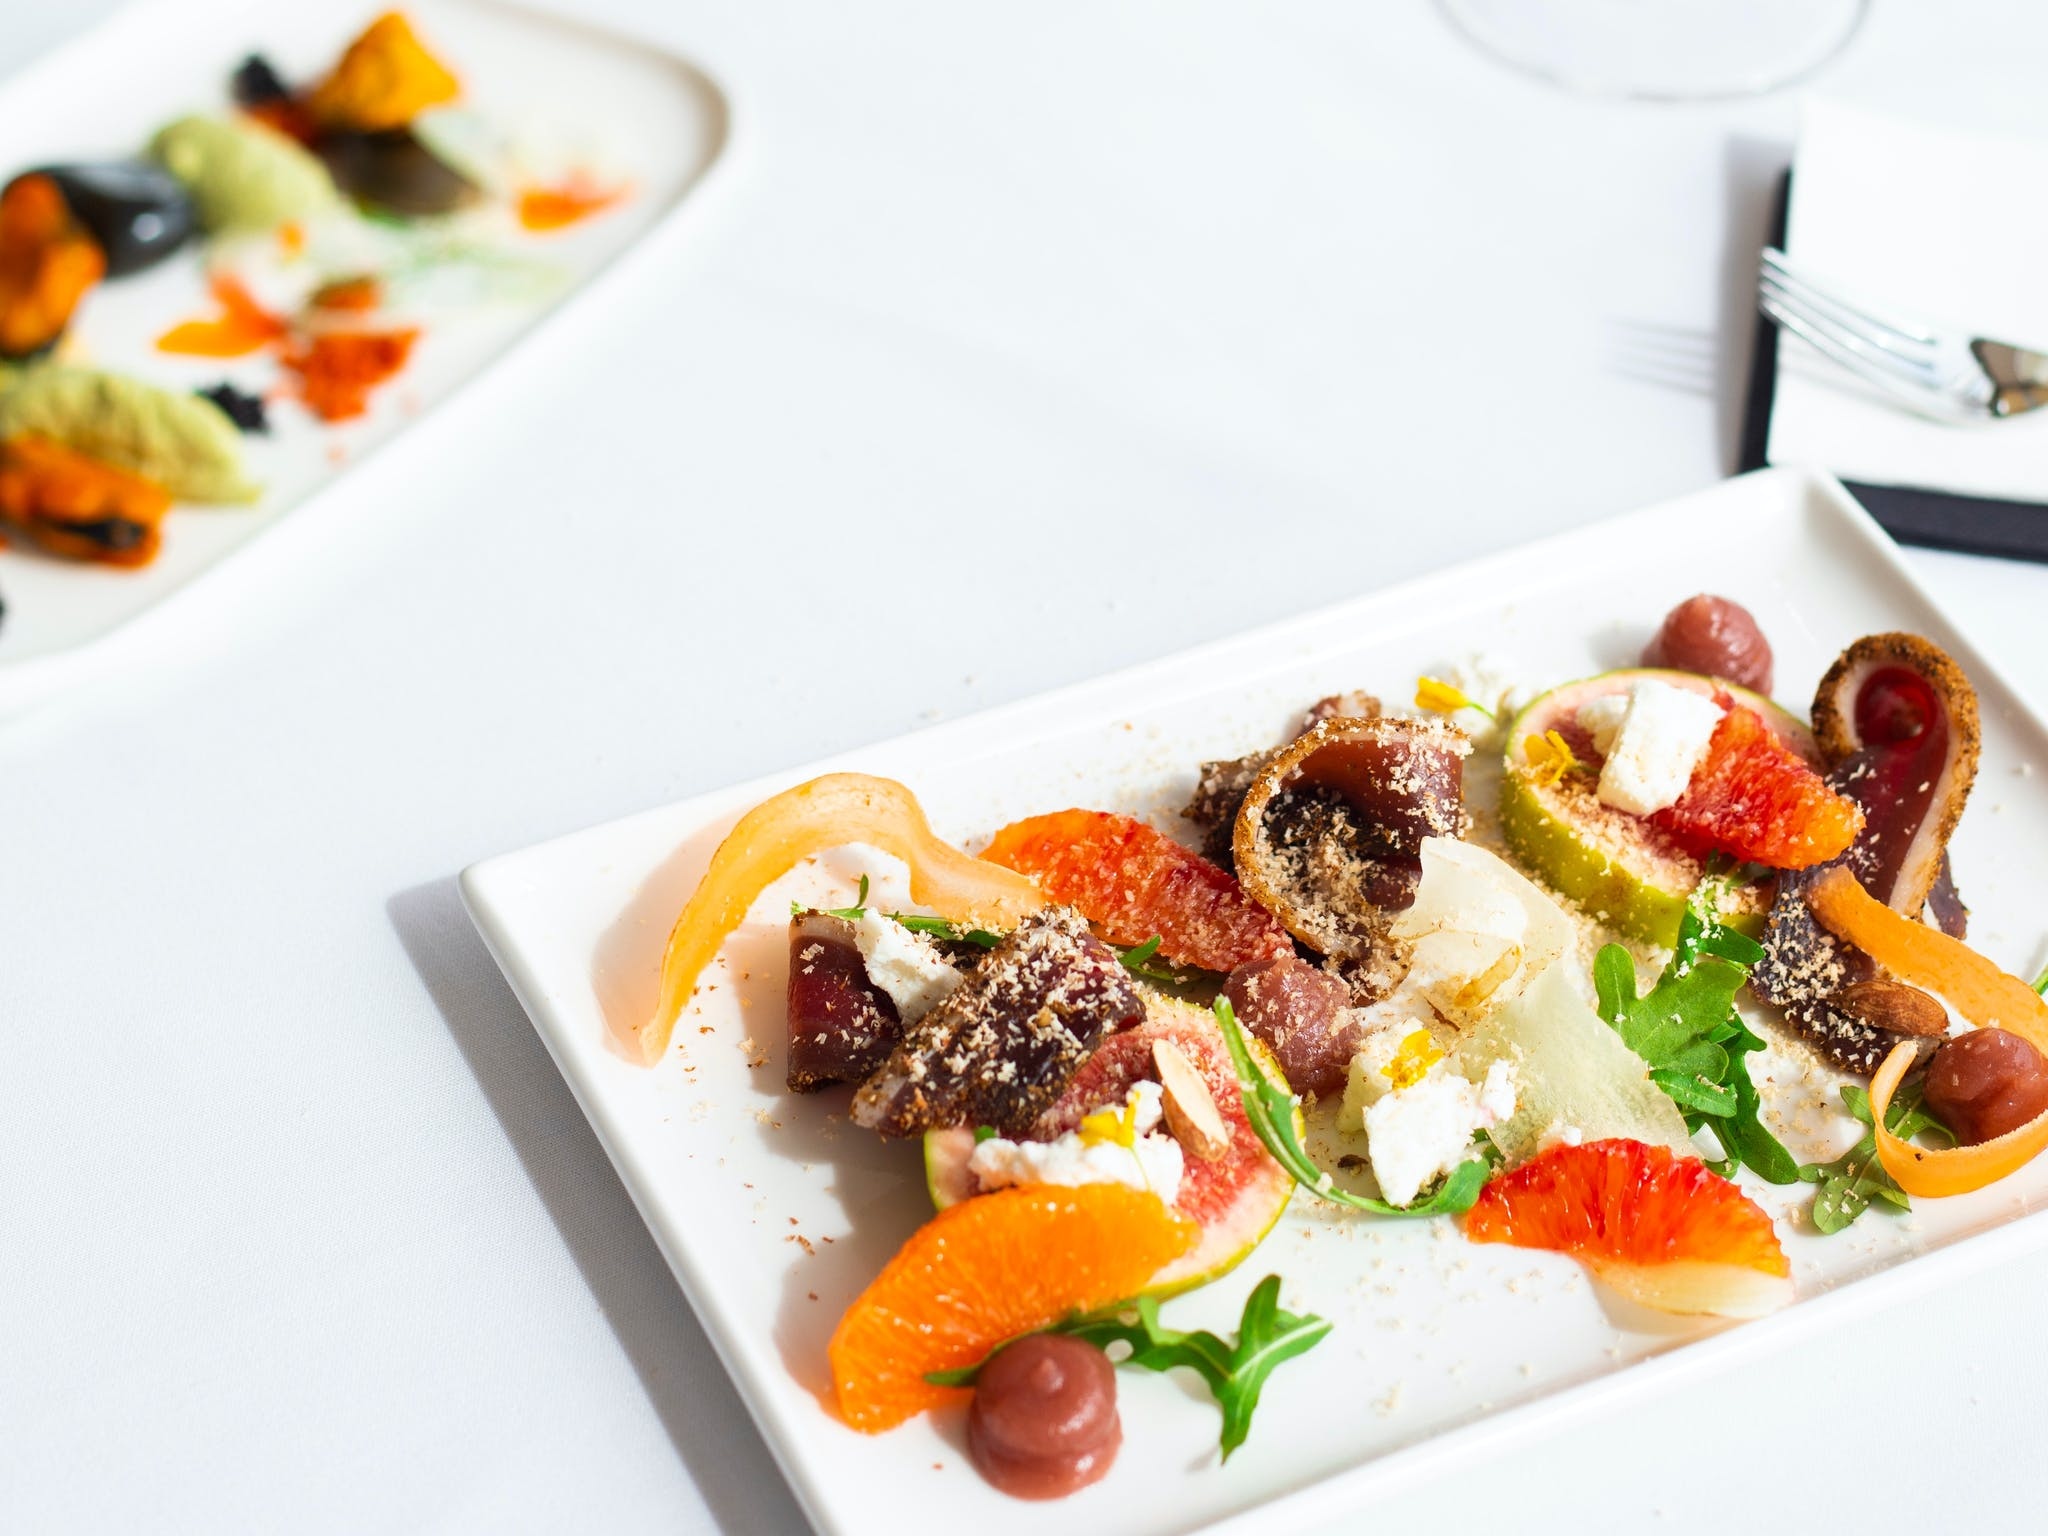 Delicious, vibrantly coloured duck and seafood entree dishes presented to diners, Atrium Wangaratta